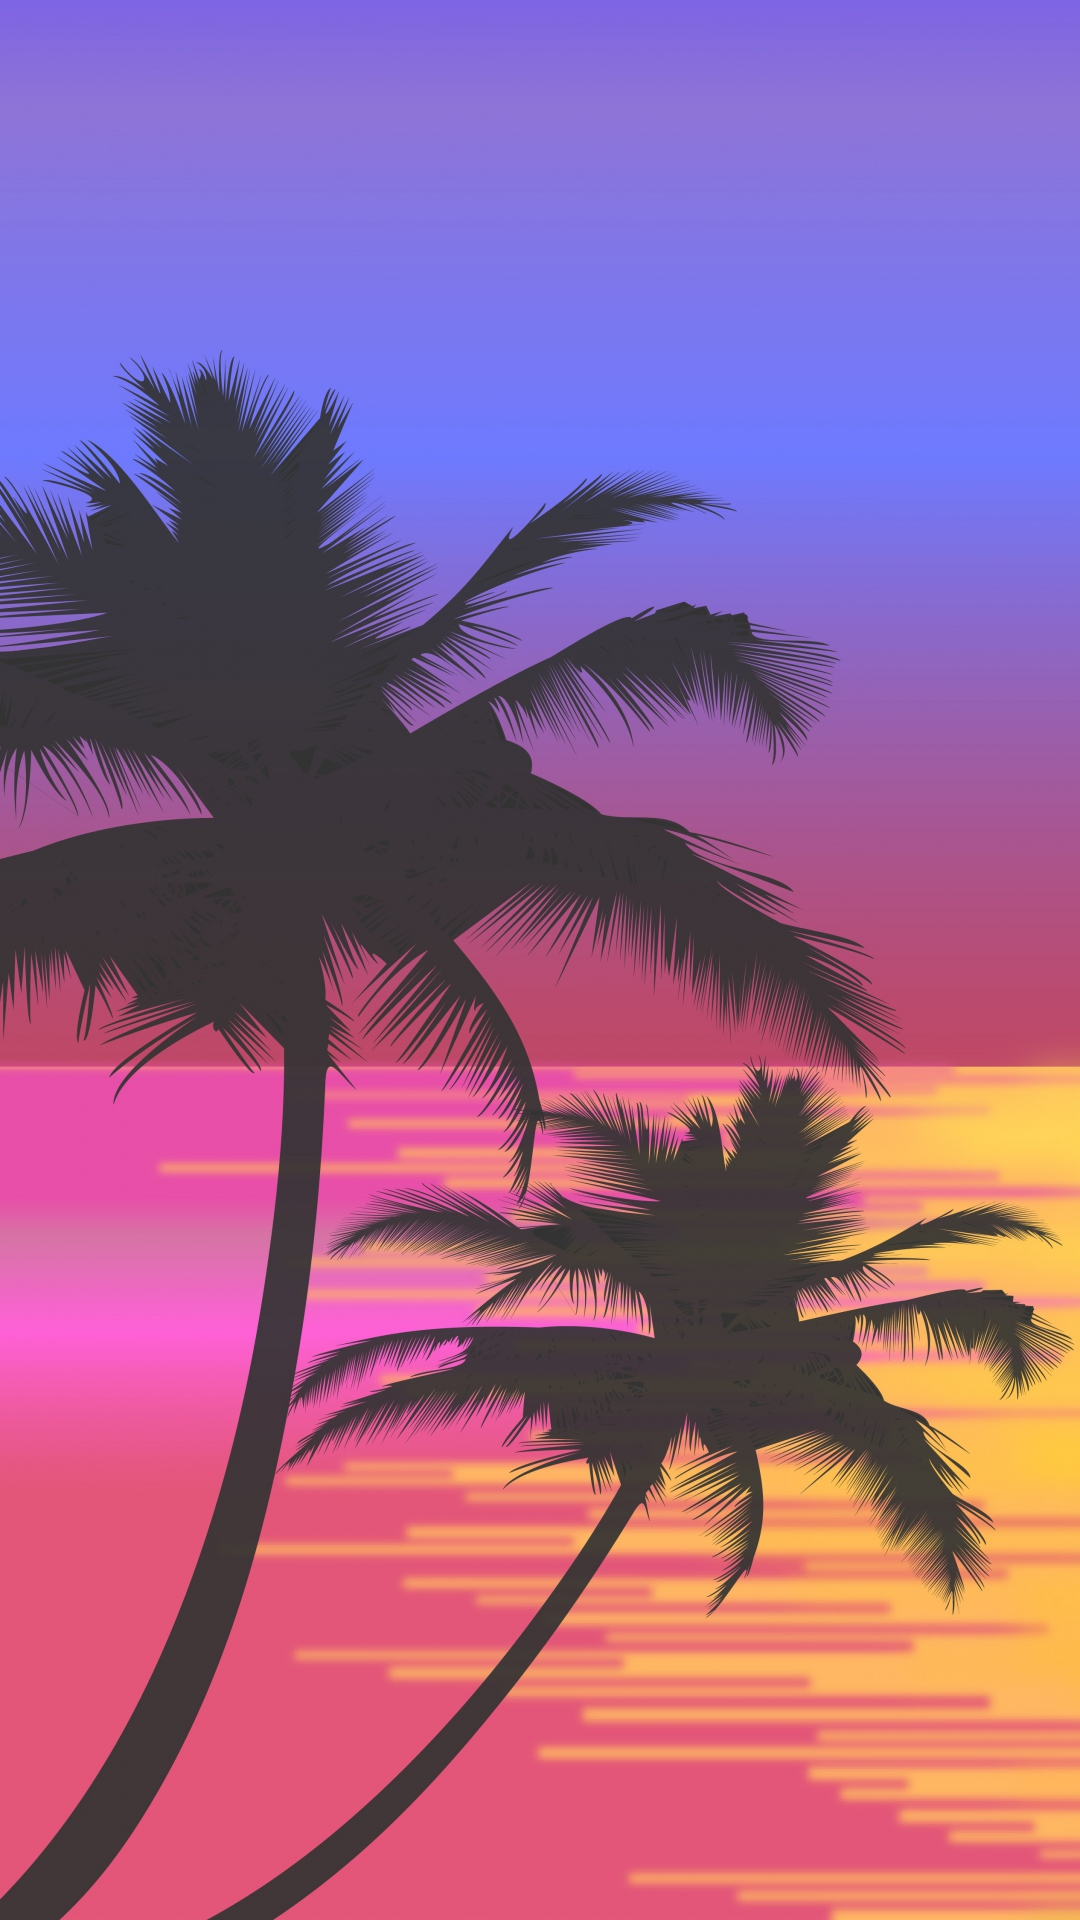 Black And White Wallpaper Iphone 6 Cute Palm Tree Wallpaper For Iphone X 8 7 6 Free Download